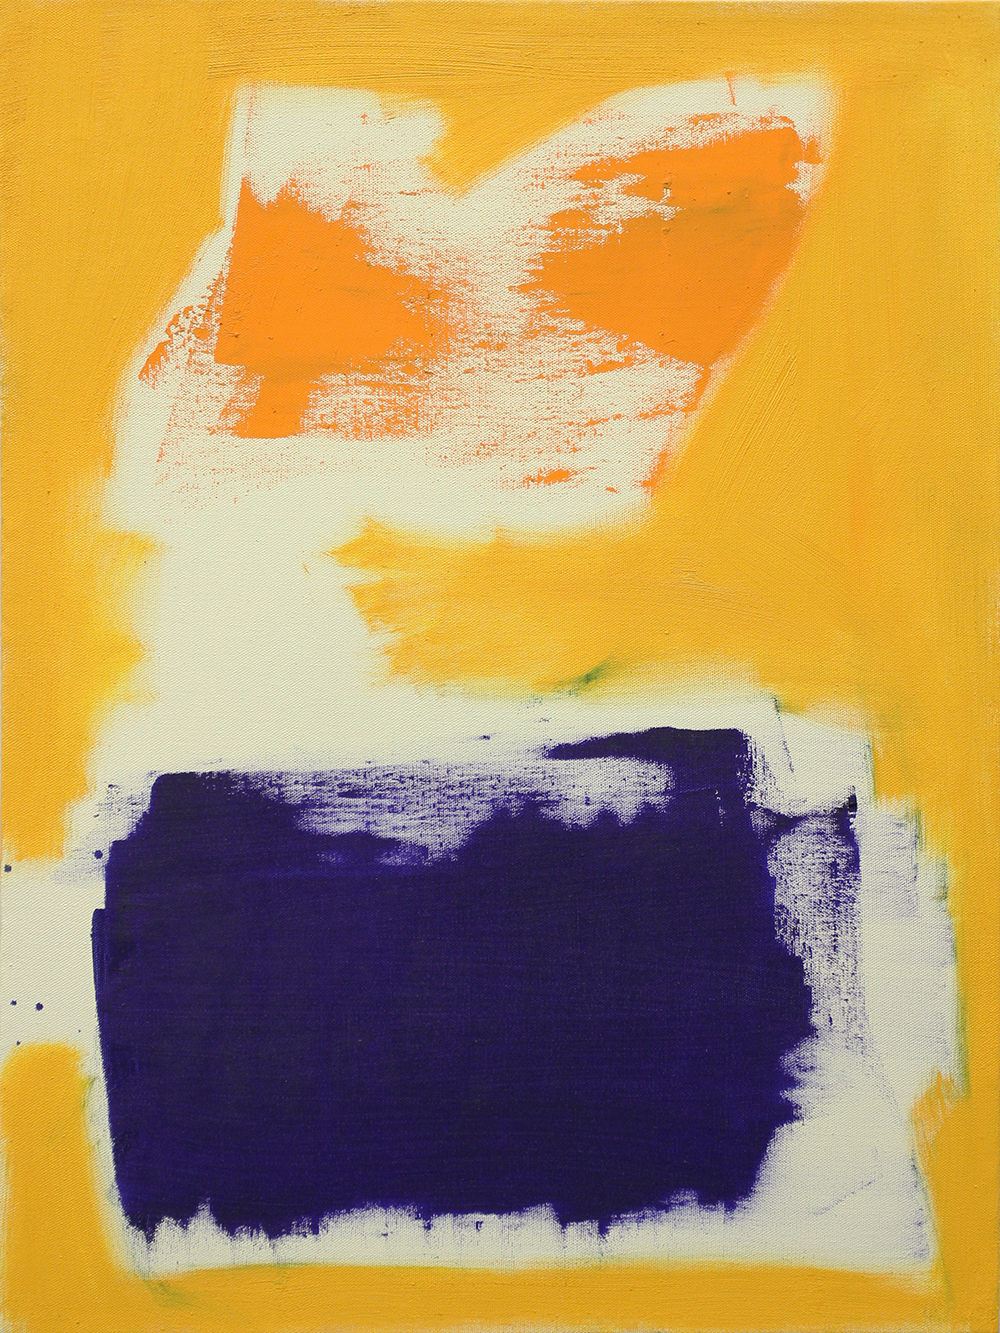 yellow, 2013, oil on canvas, 24 x 18 in